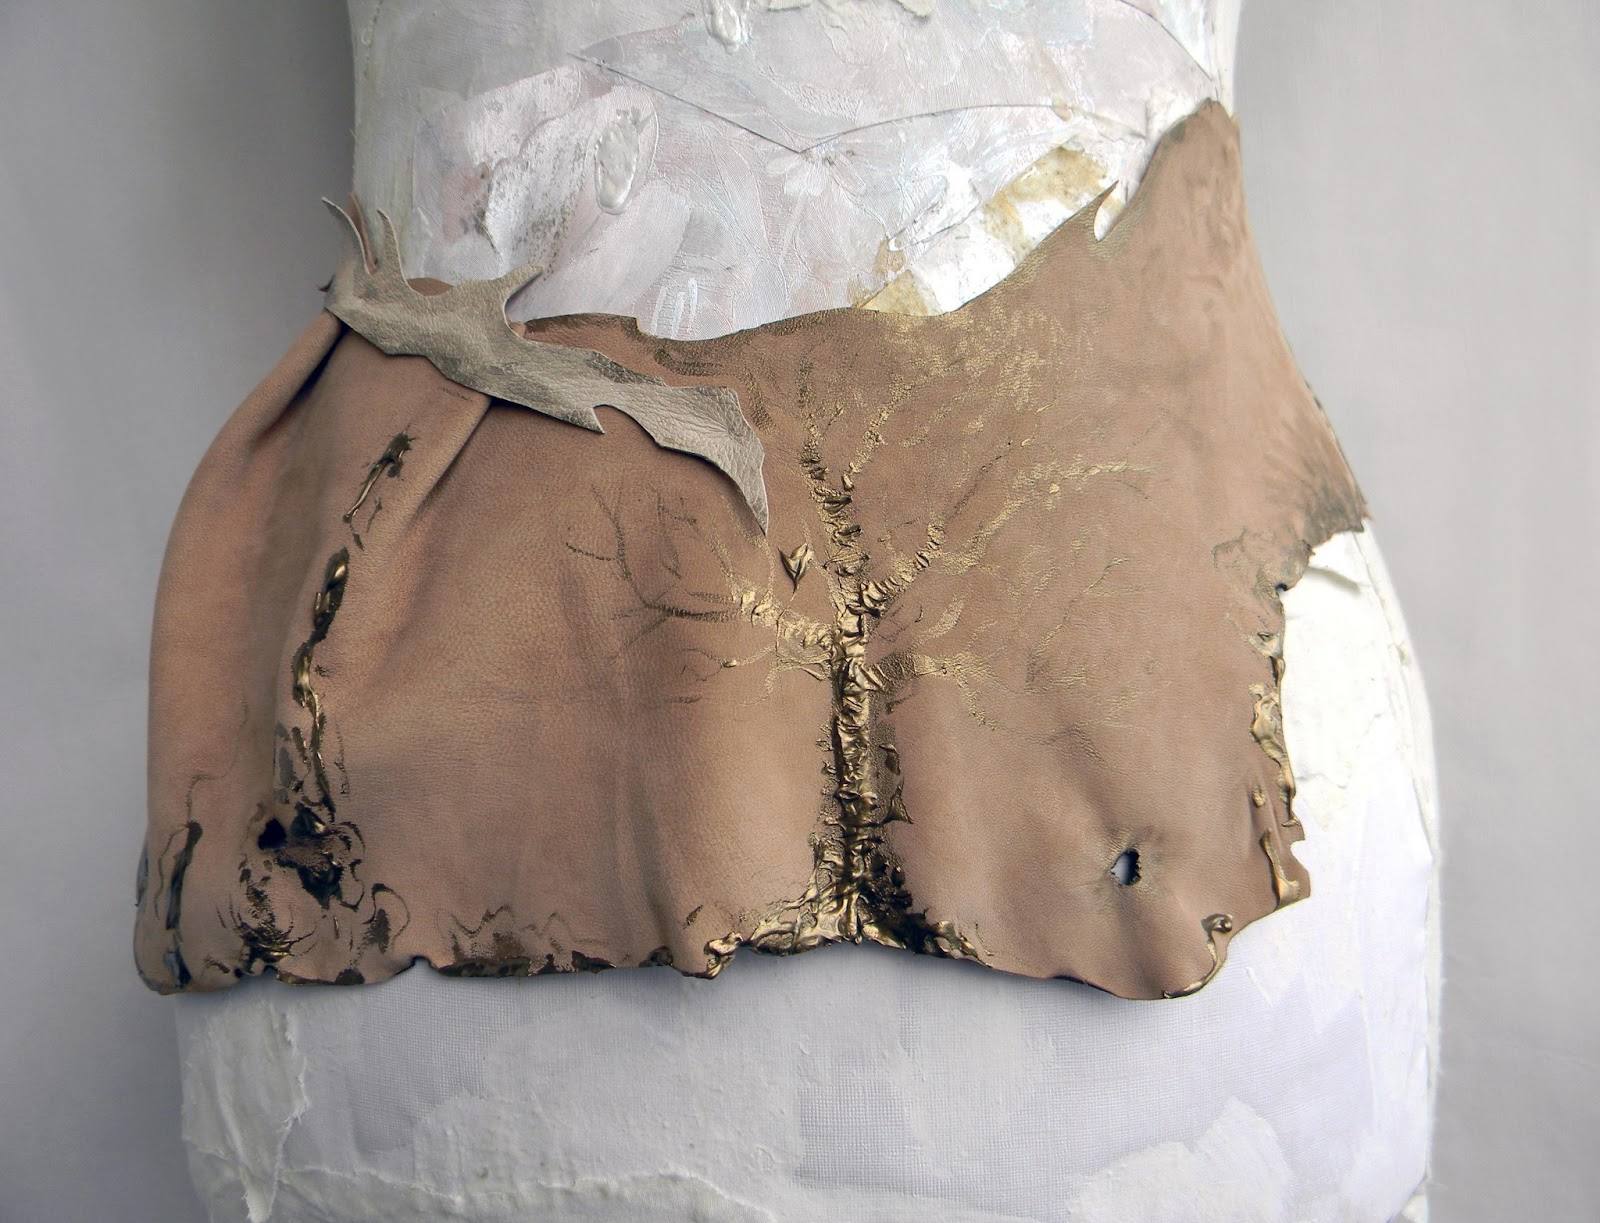 Unique Bustle Skirt Leather Belt Savannah Mori Girl Woodland Inspired